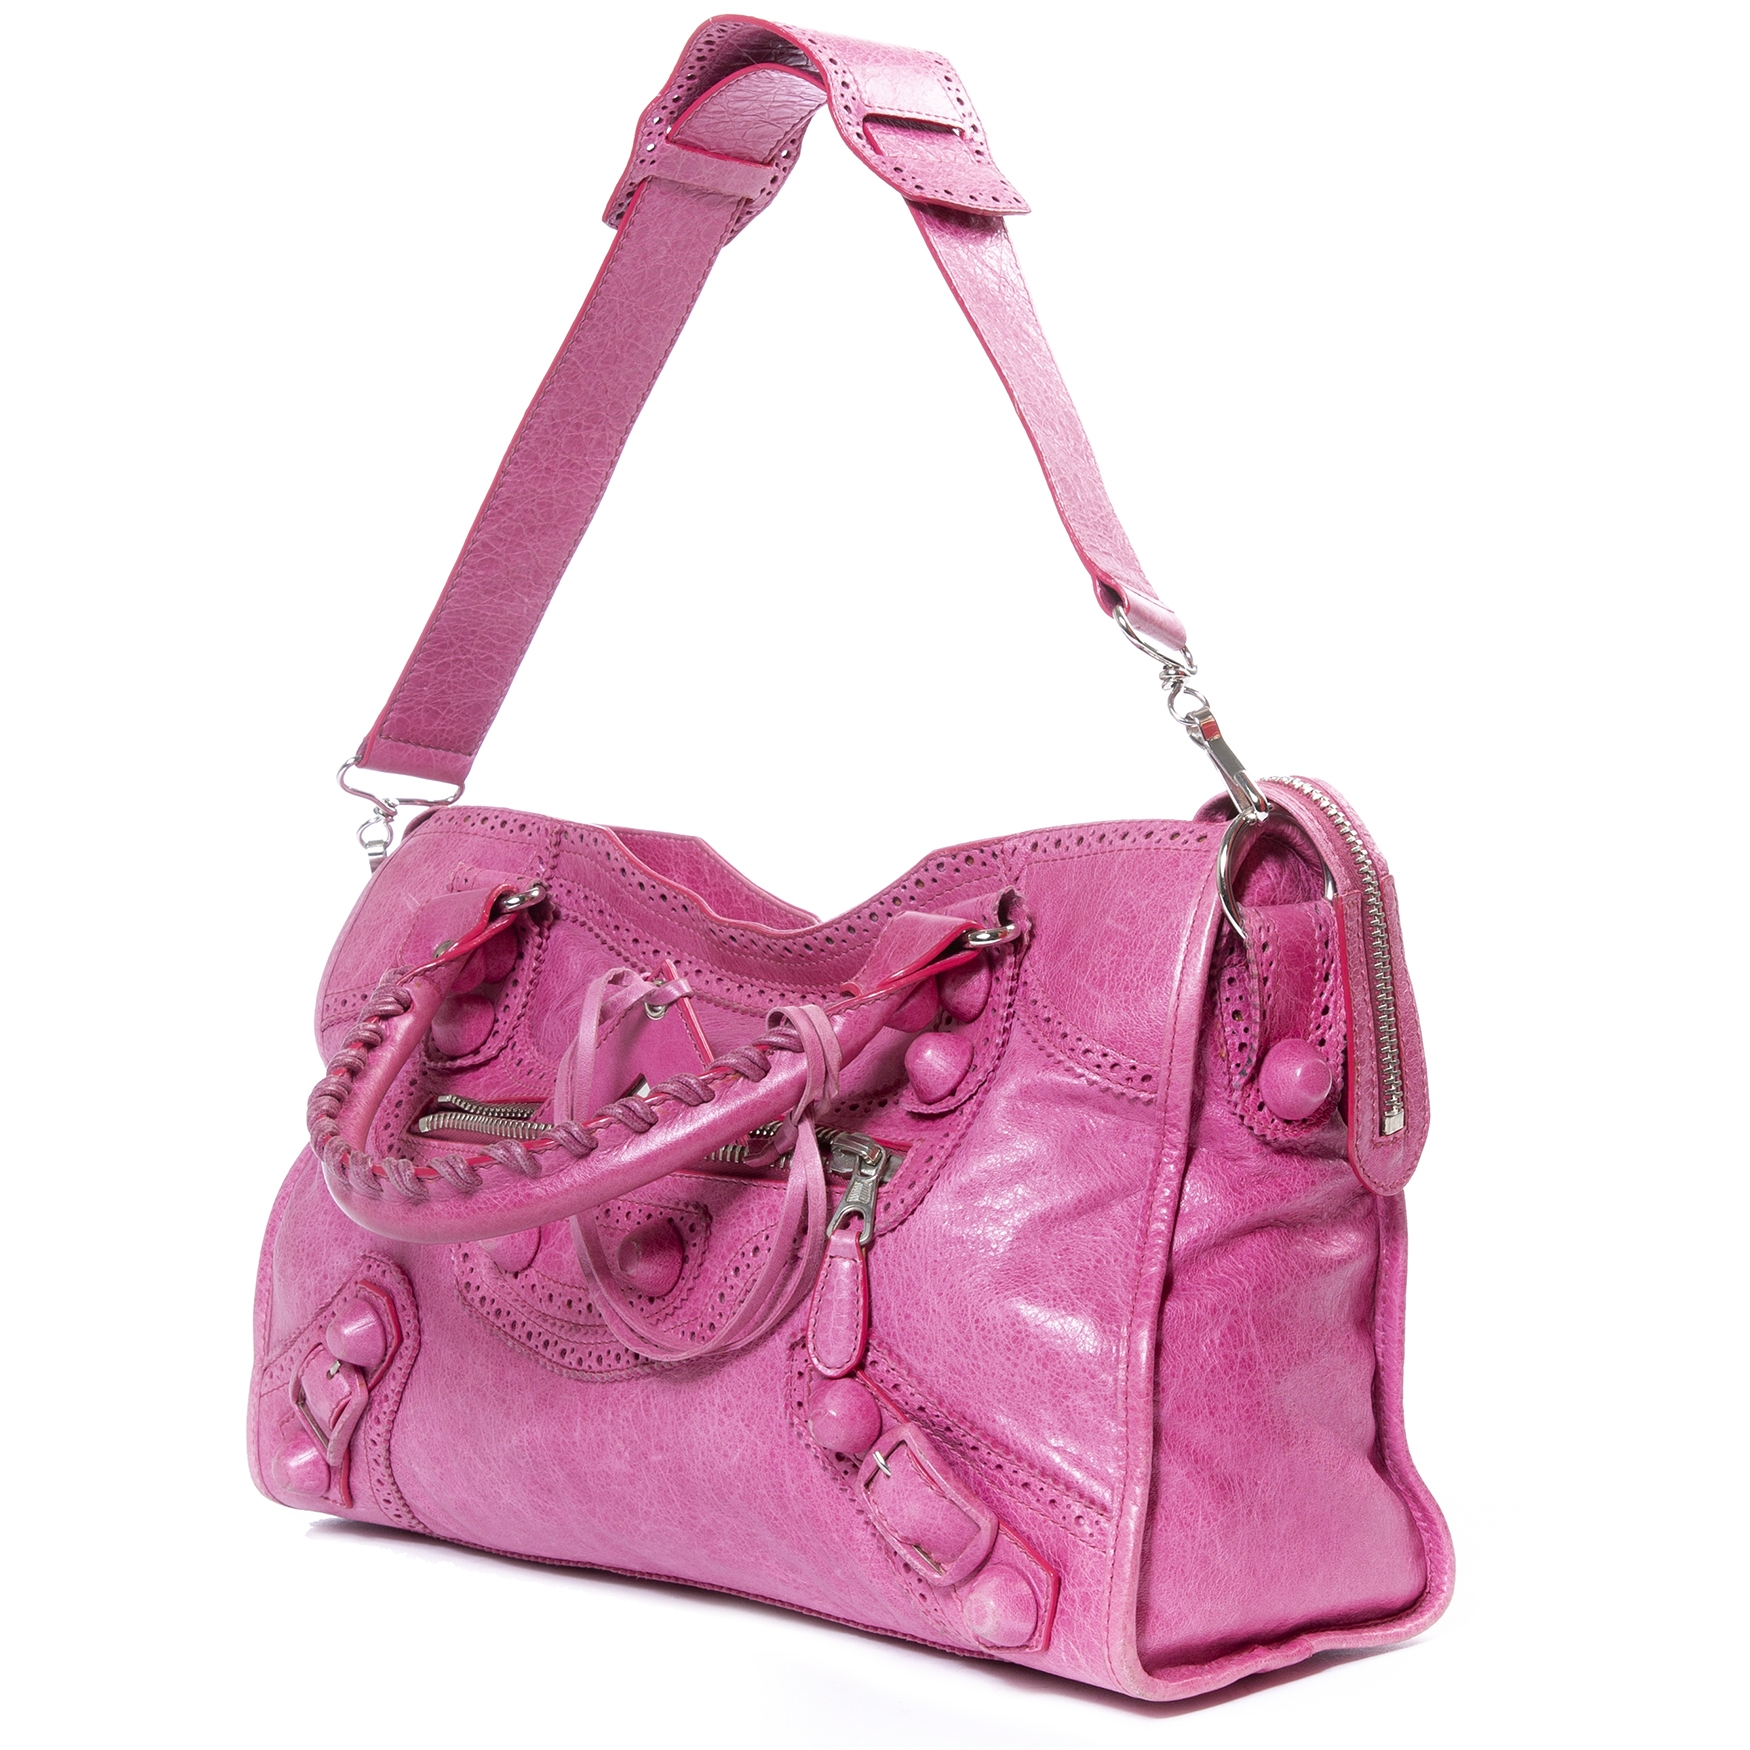 Balenciaga Rose Giant City Bag te koop bij Labellov tweedehands in Antwerpen